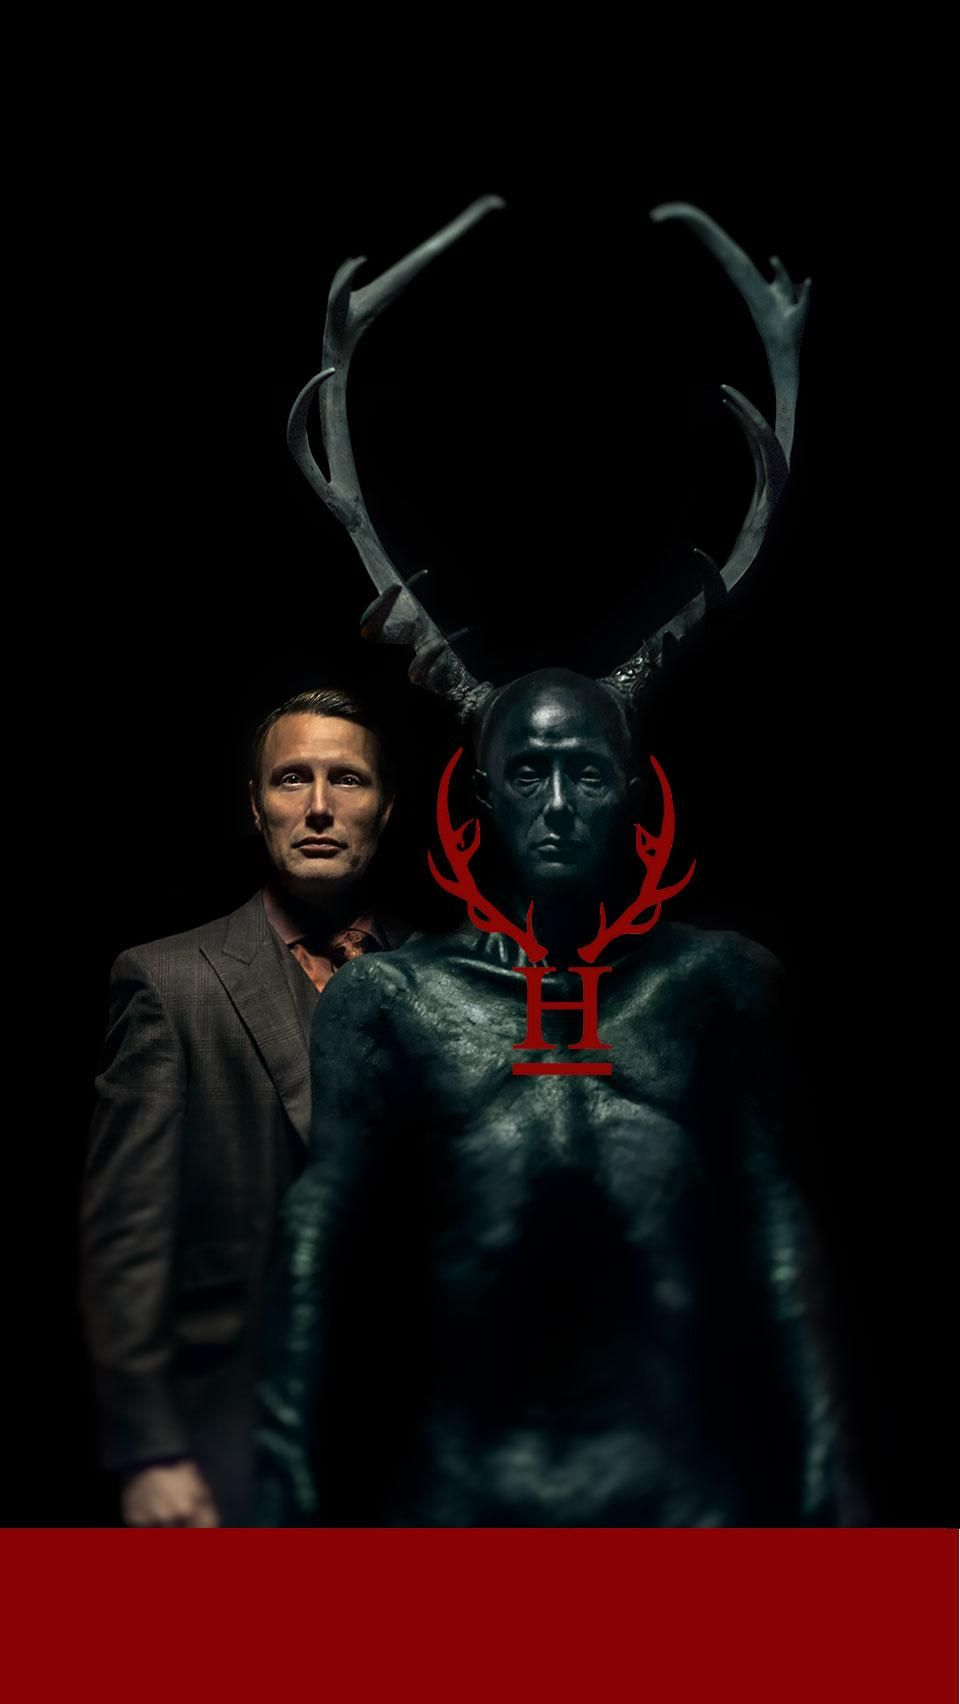 Hannibal Bring Hannibal With You Wherever You Go With This Hannibal Wallpaper Hannibal Book Hannibal